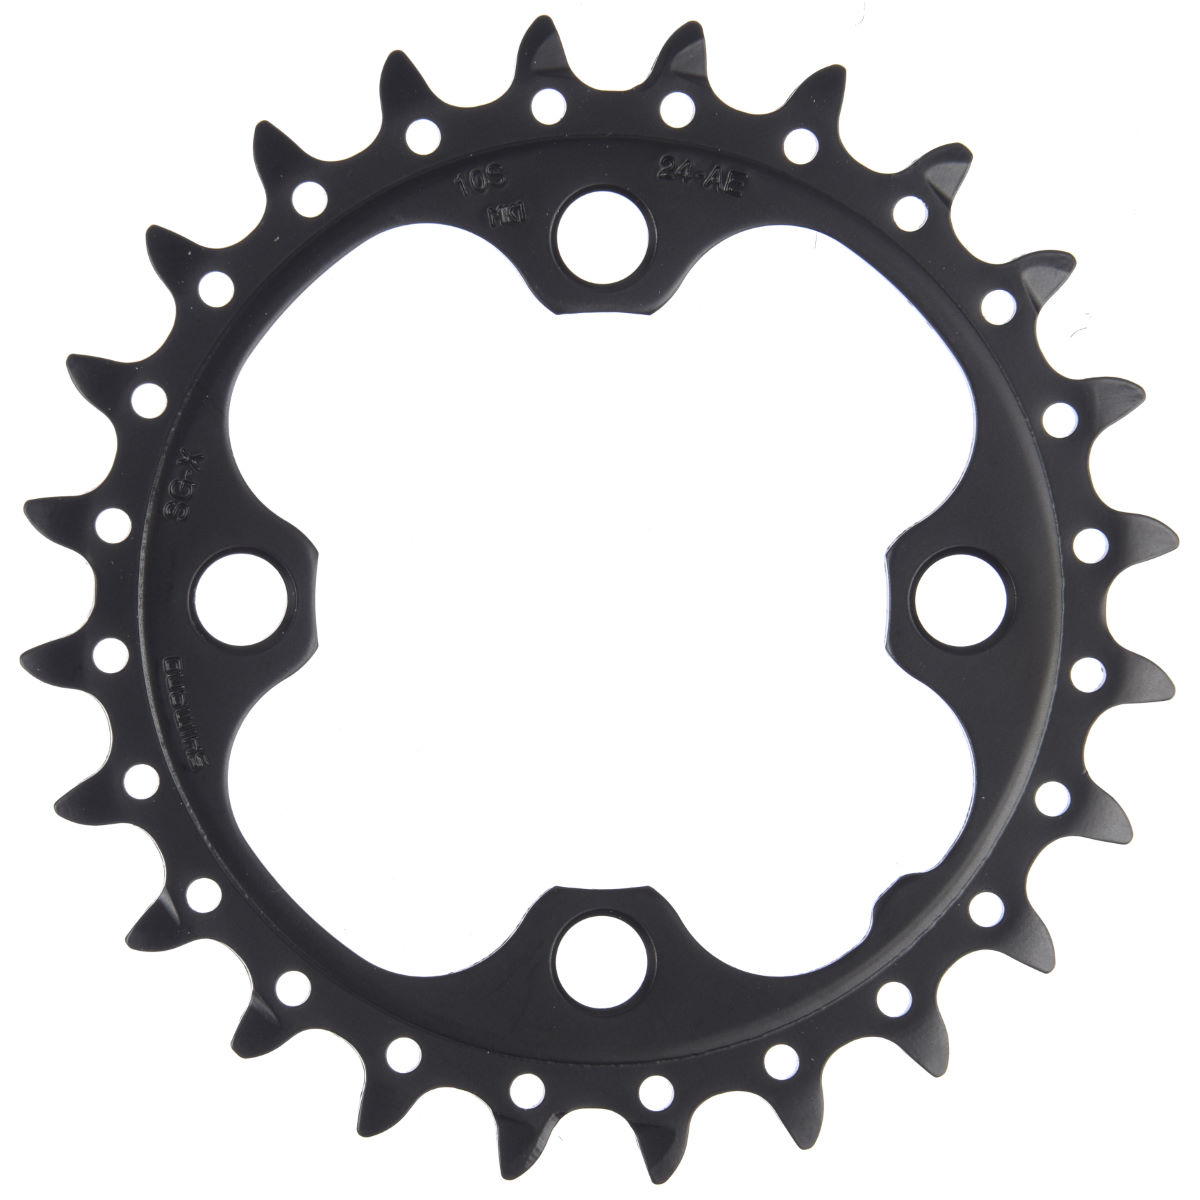 Shimano Deore FCM590 10 Speed Triple Chainring   Chain Rings